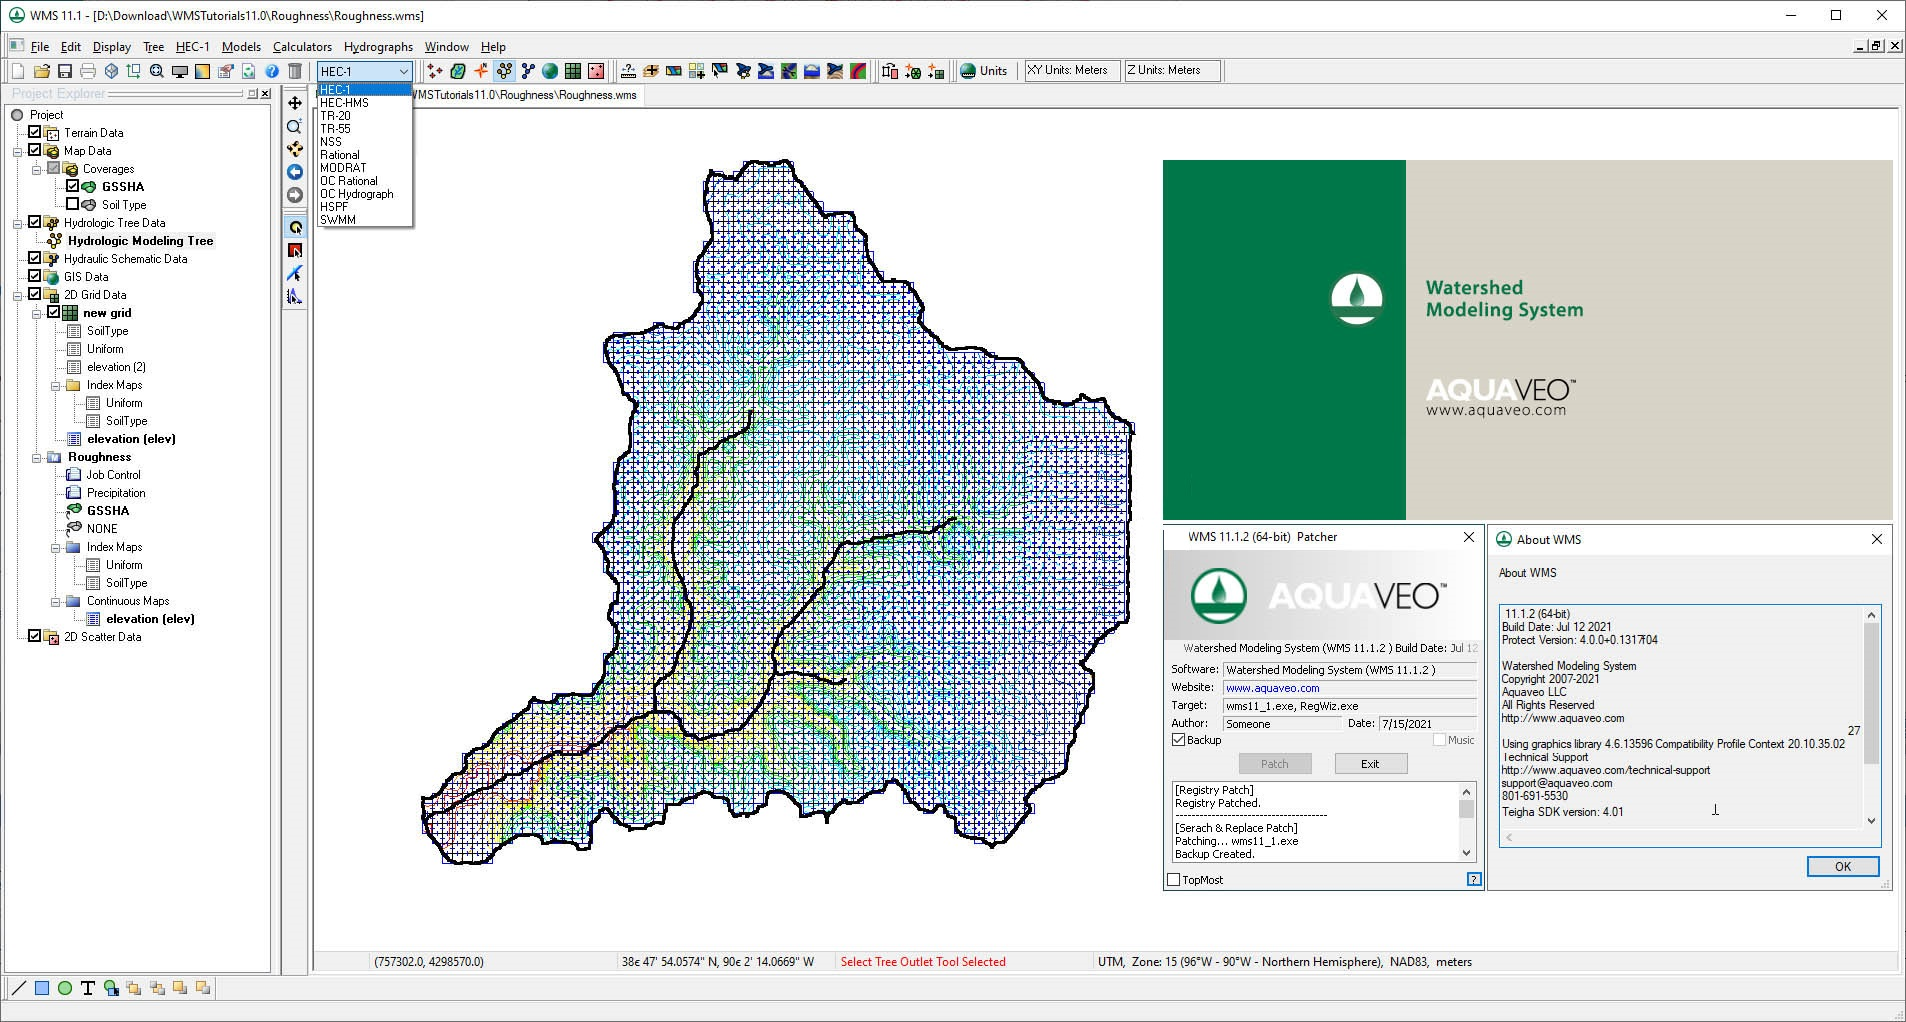 Working with Aquaveo Watershed Modeling System (WMS) 11.1.2 full